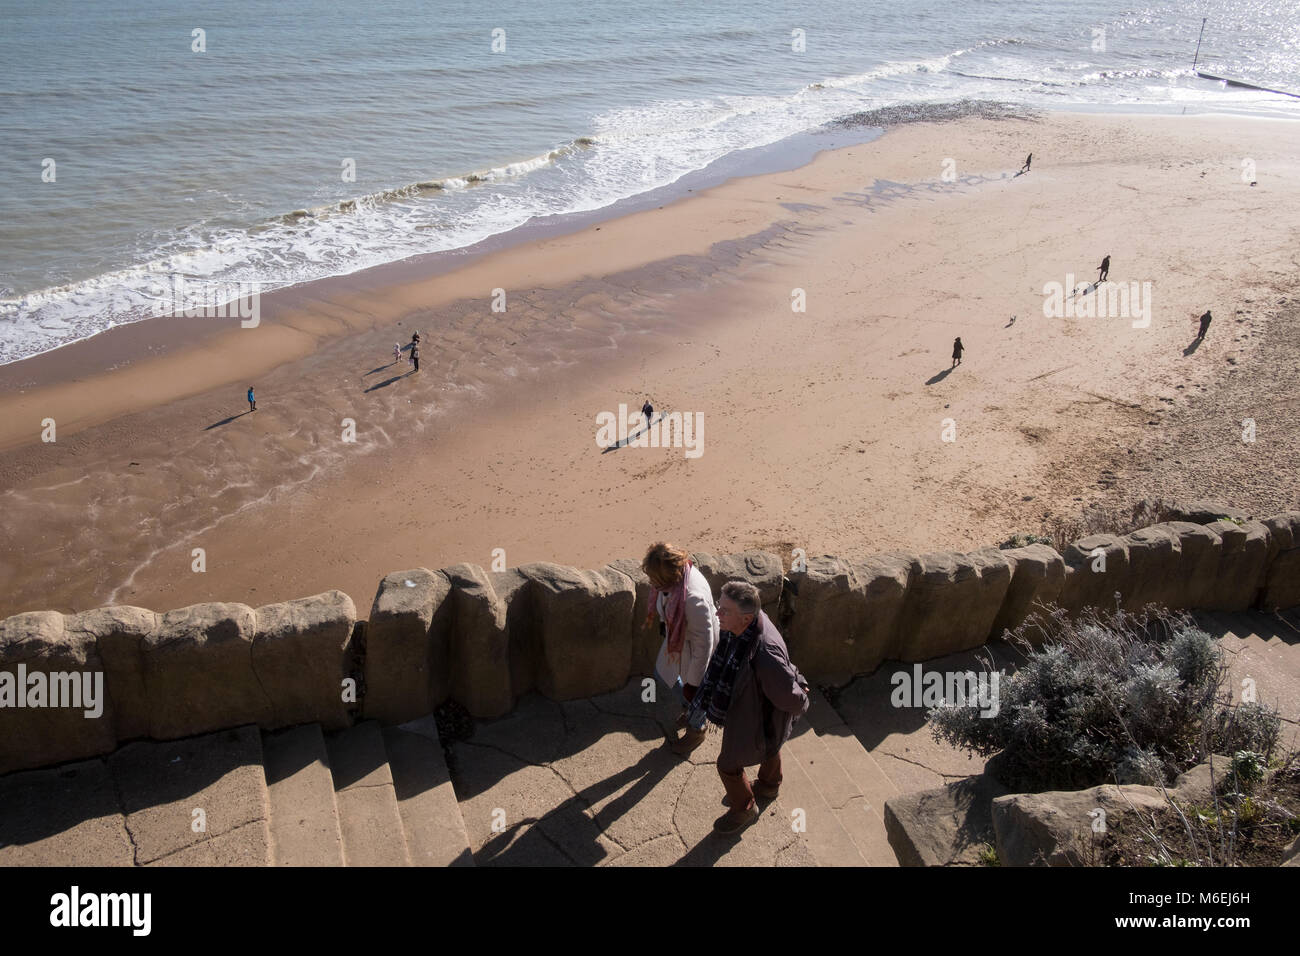 People walk on the sandy beach  with their dogs and up the cliff steps at Ramsgate as the tide recedes. - Stock Image